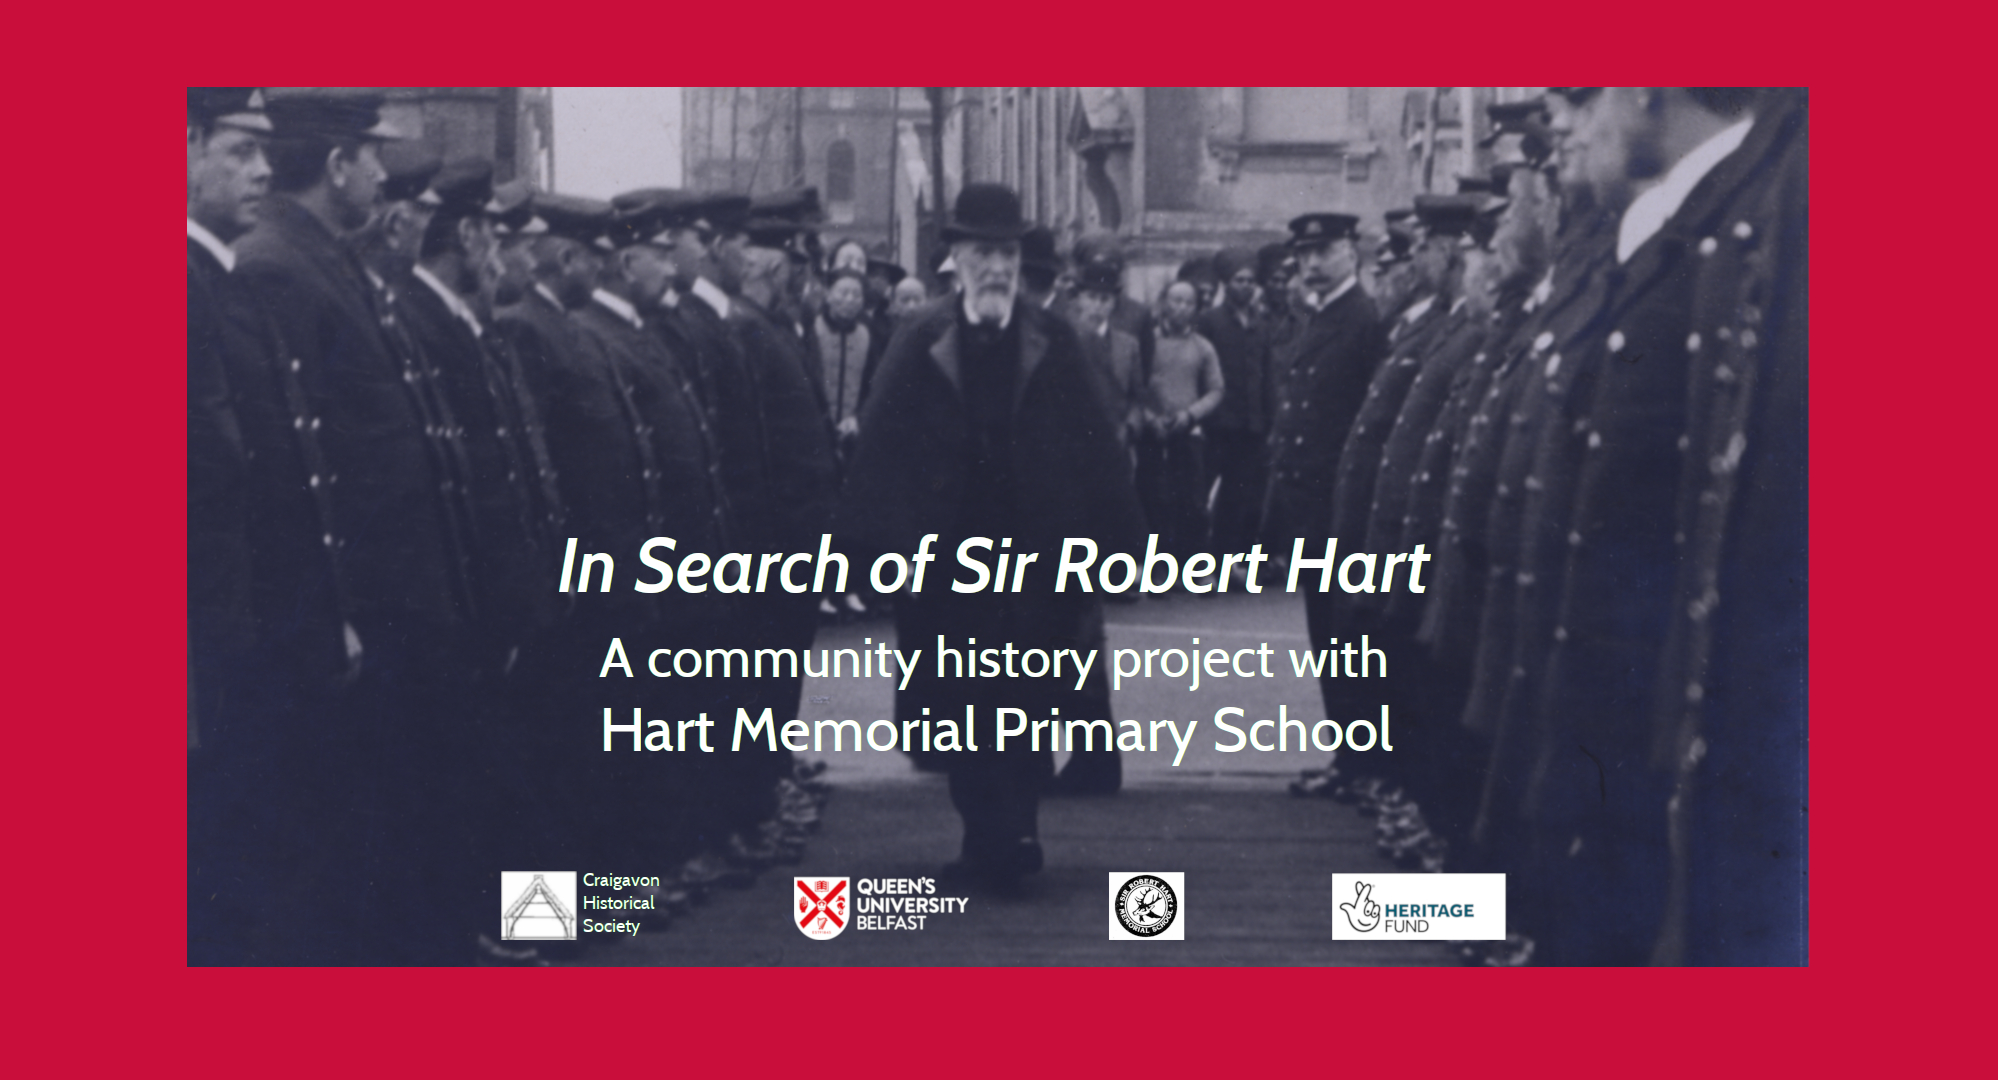 In Search Of Sir Robert Hart